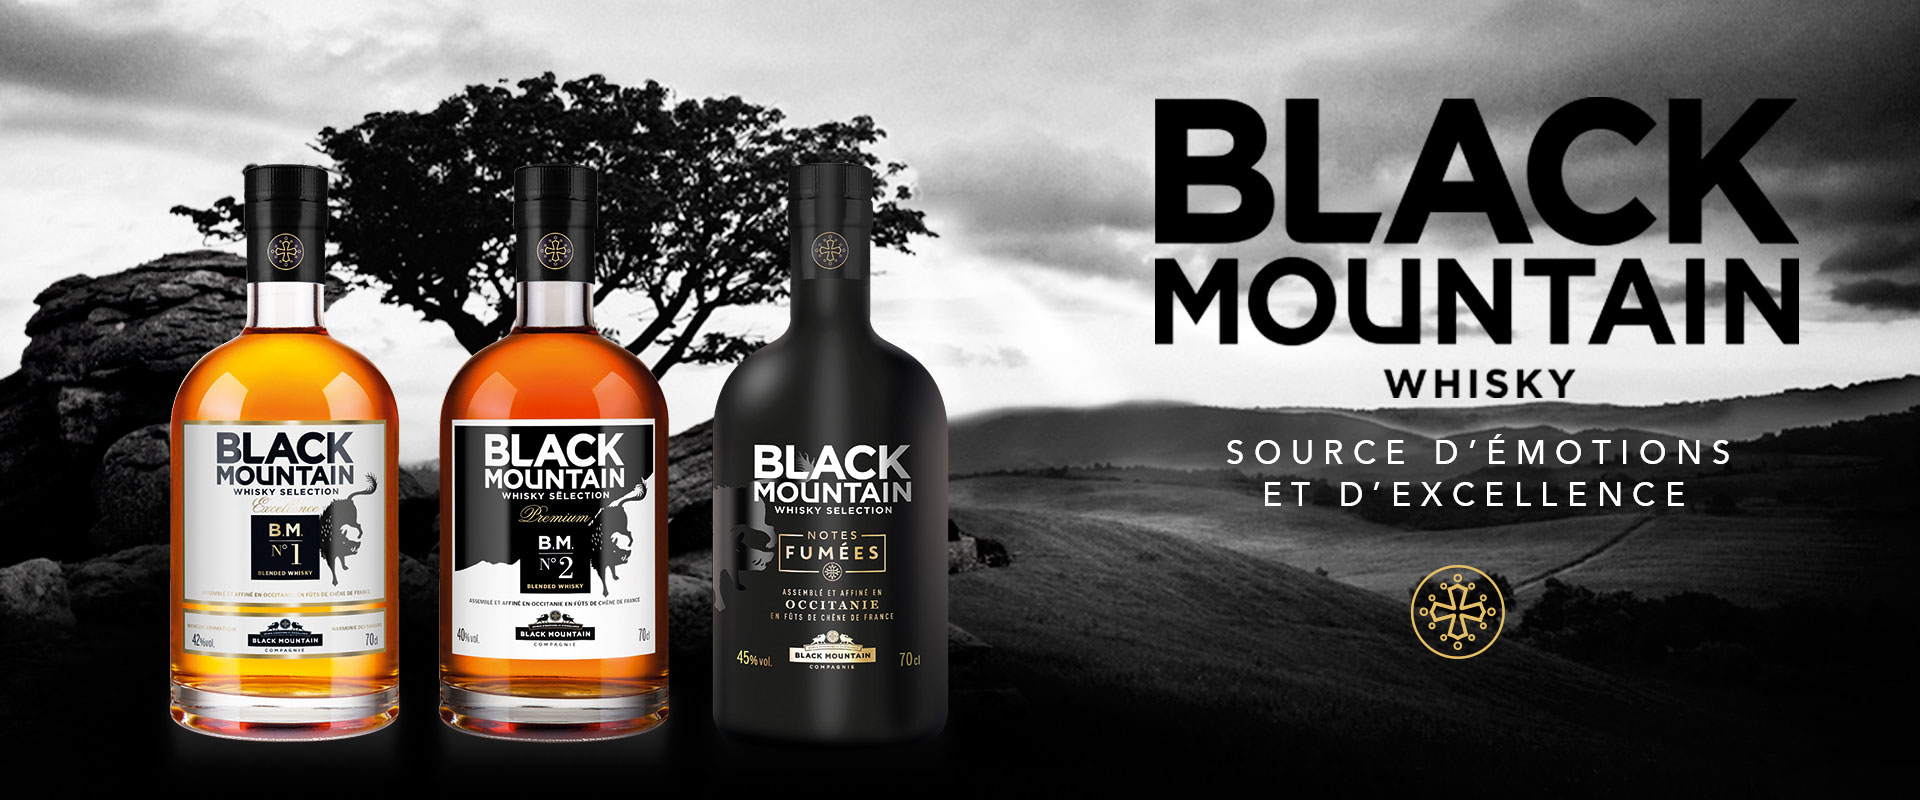 3bouteilles black mountain.cartoon.design